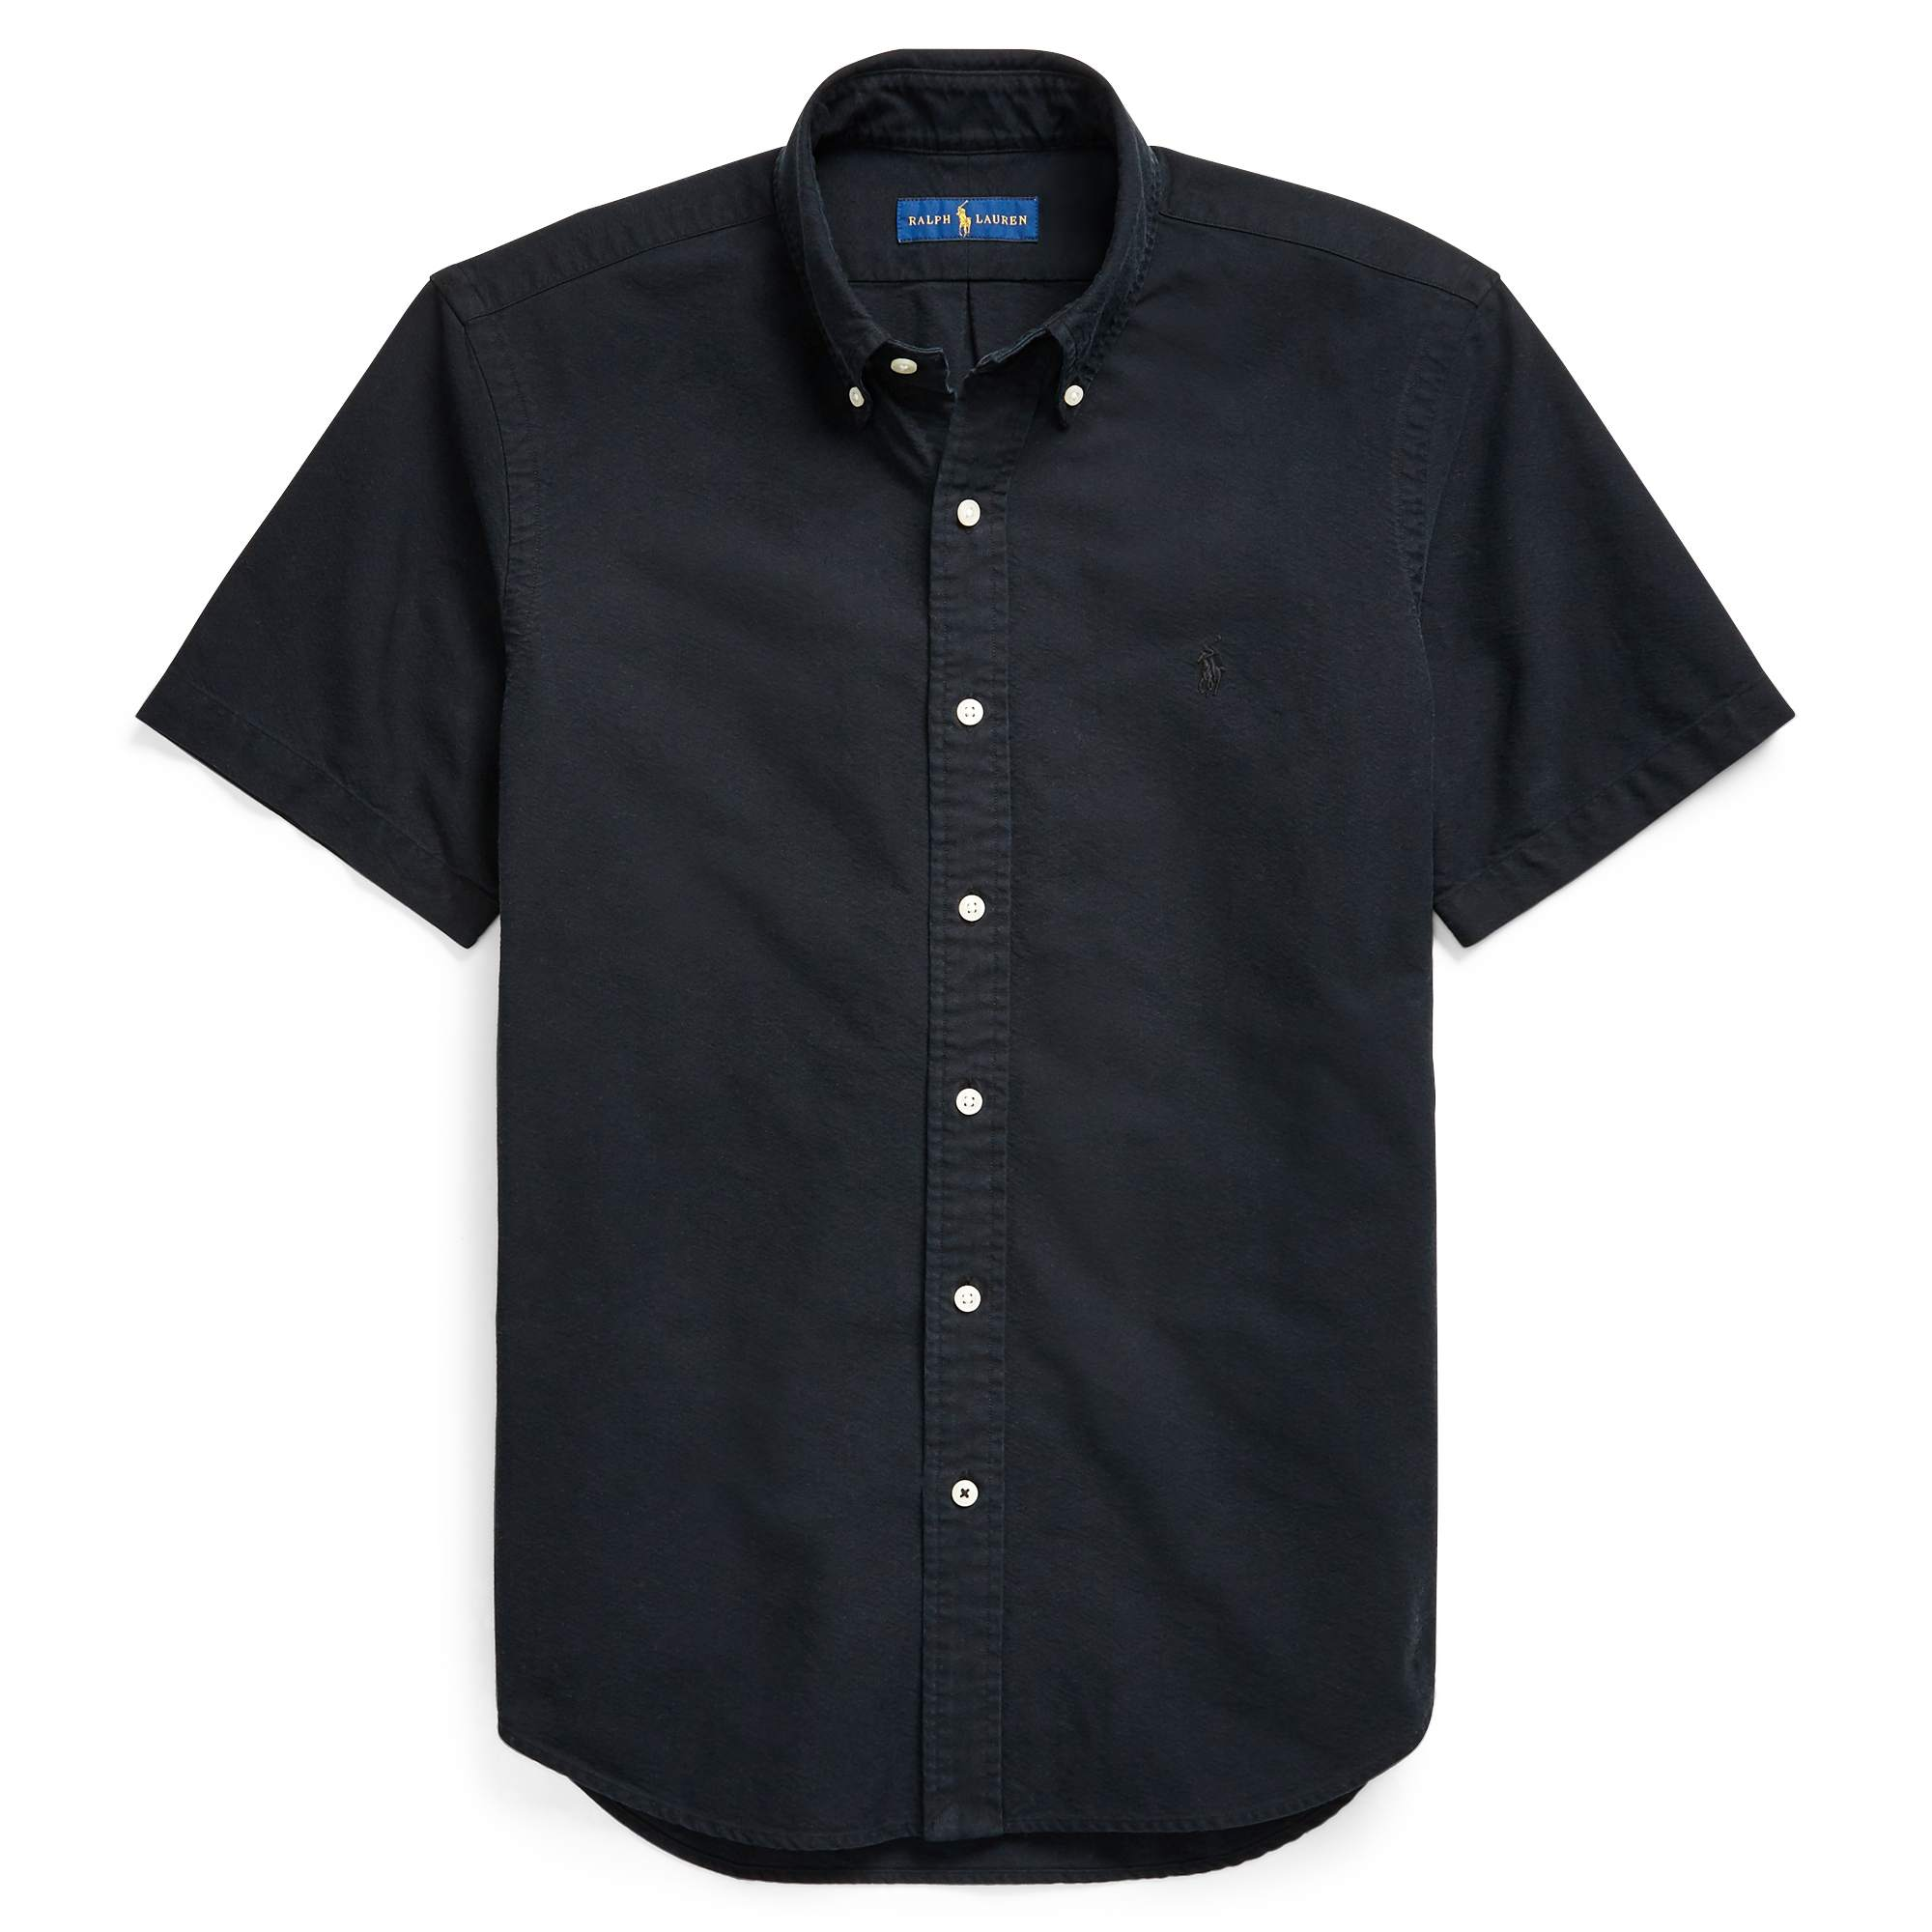 e65590bb3f7af The Best Oxford Shirts of 2019